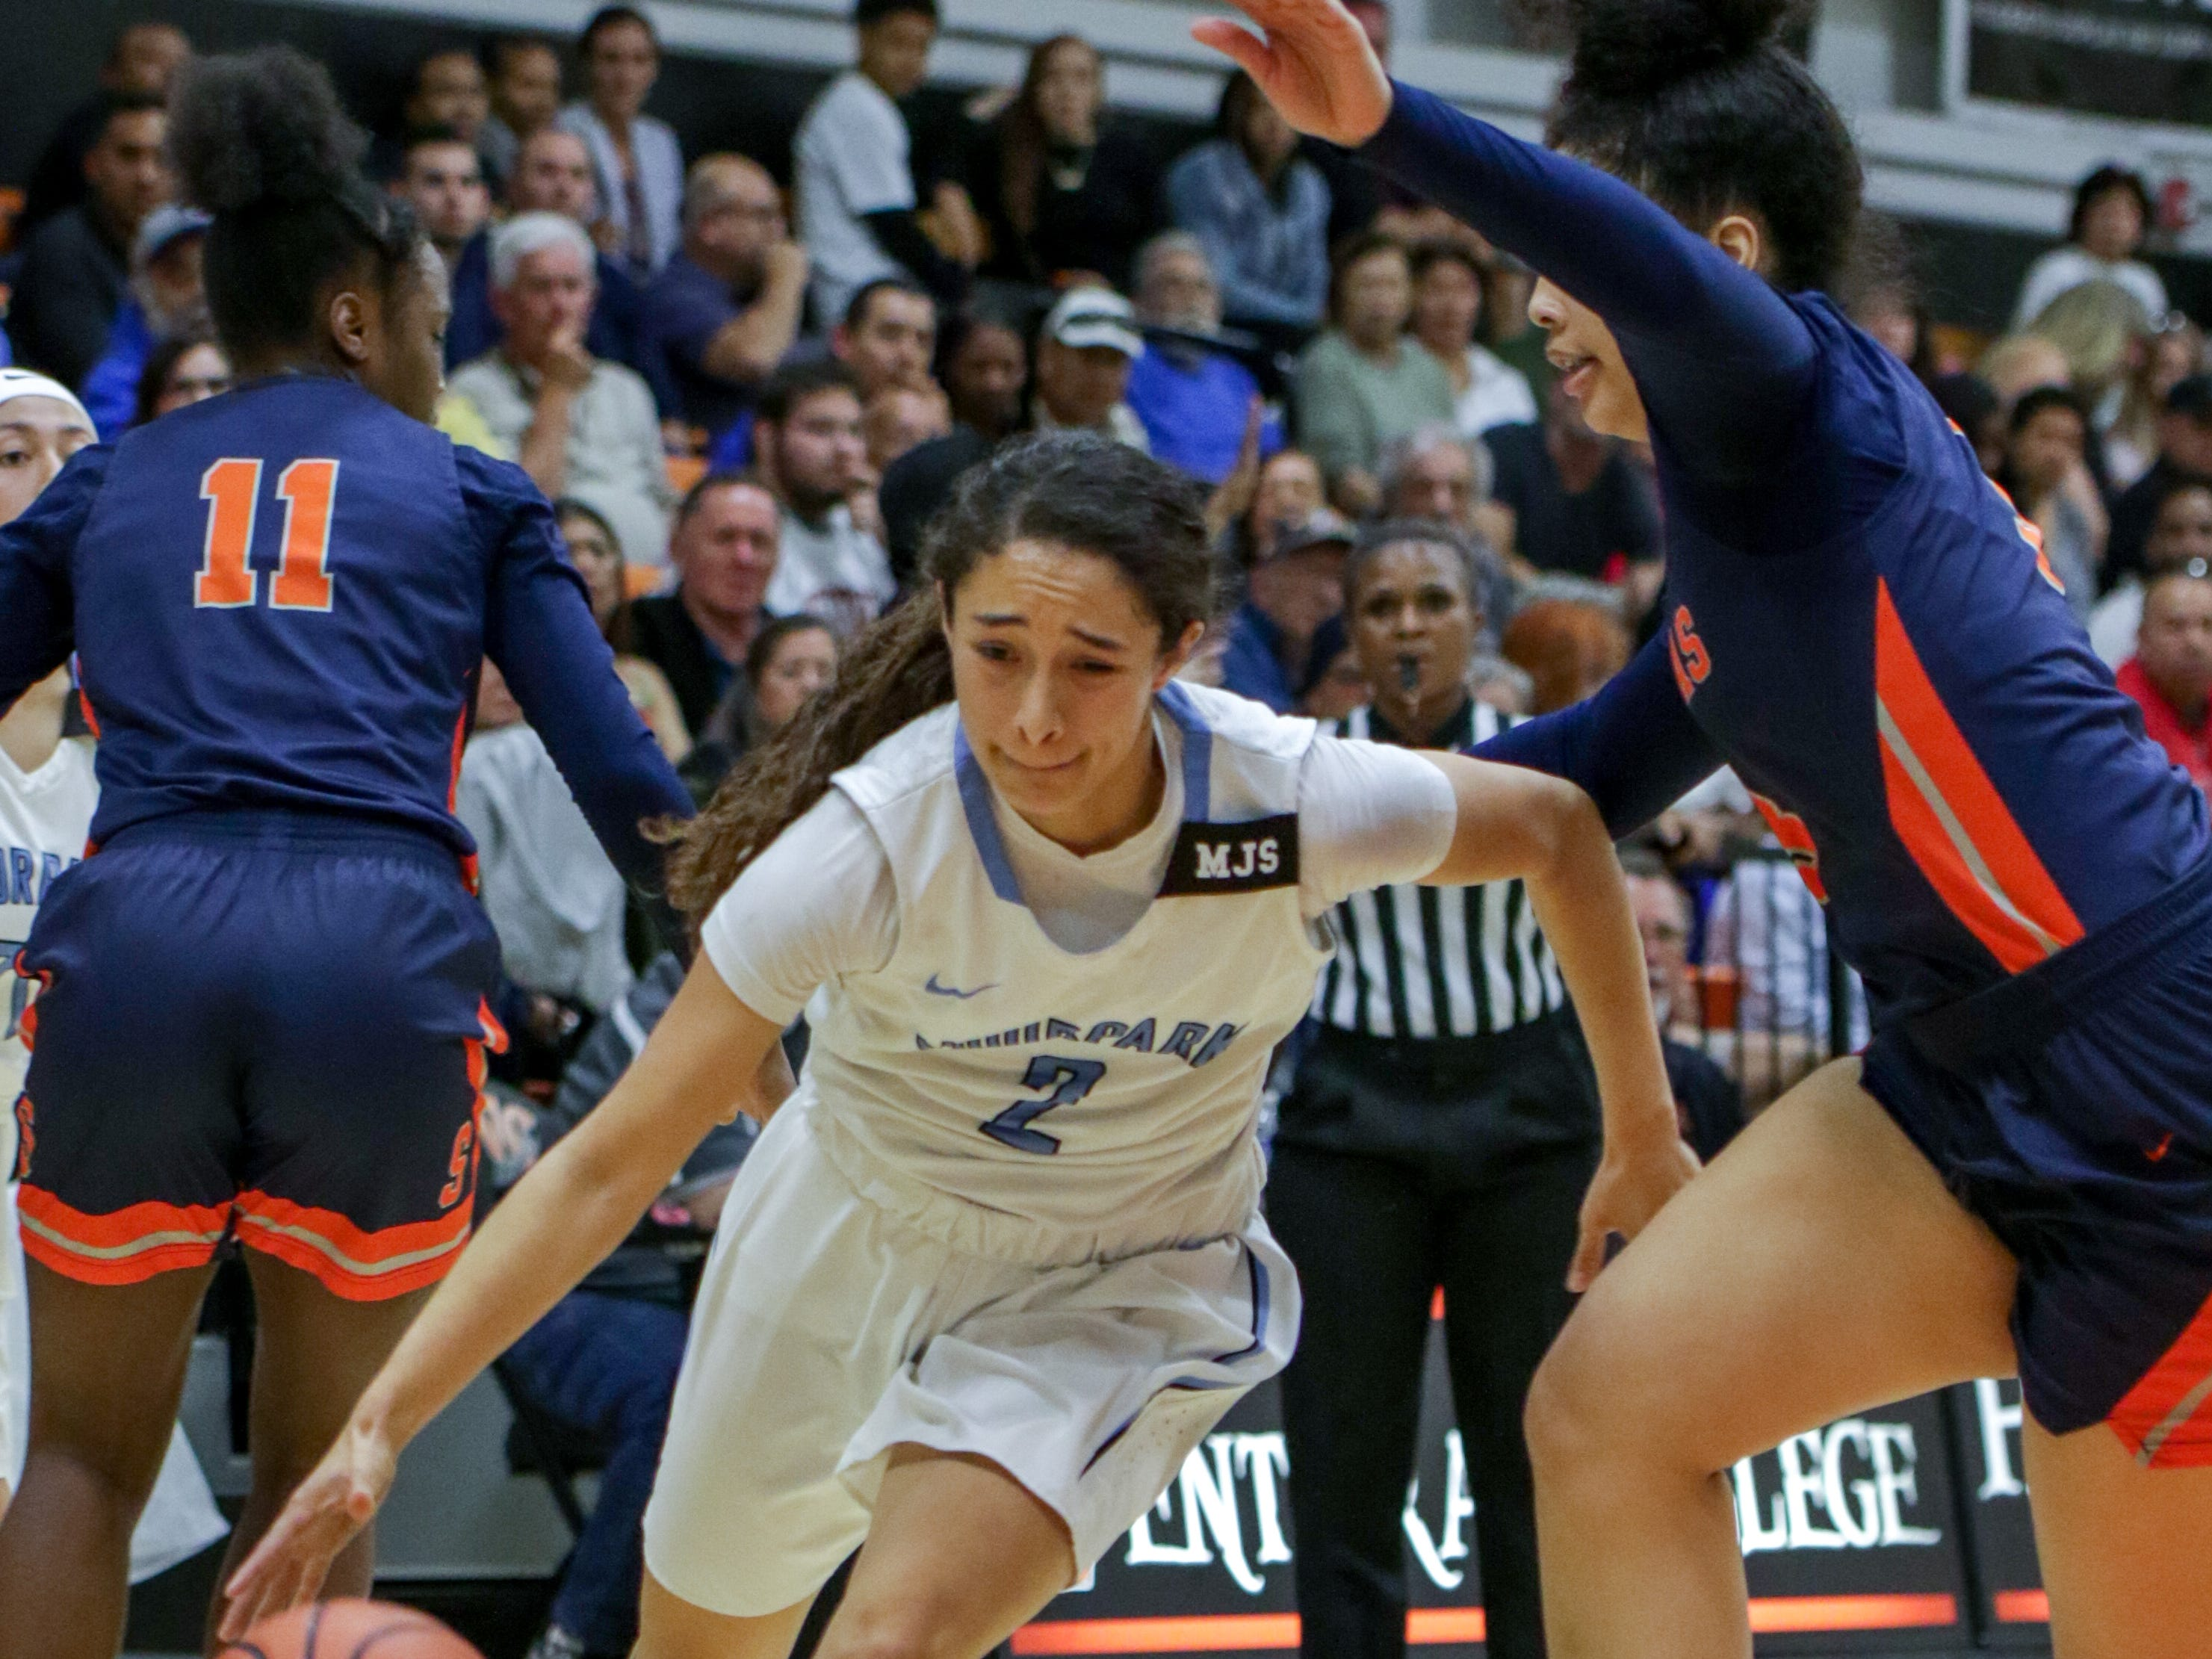 Moorpark College freshman Isabel Ayala dribbles under pressure during the CCCAA state quarterfinal against College of the Sequoias on Friday night at Ventura College. Moorpark won, 66-58.